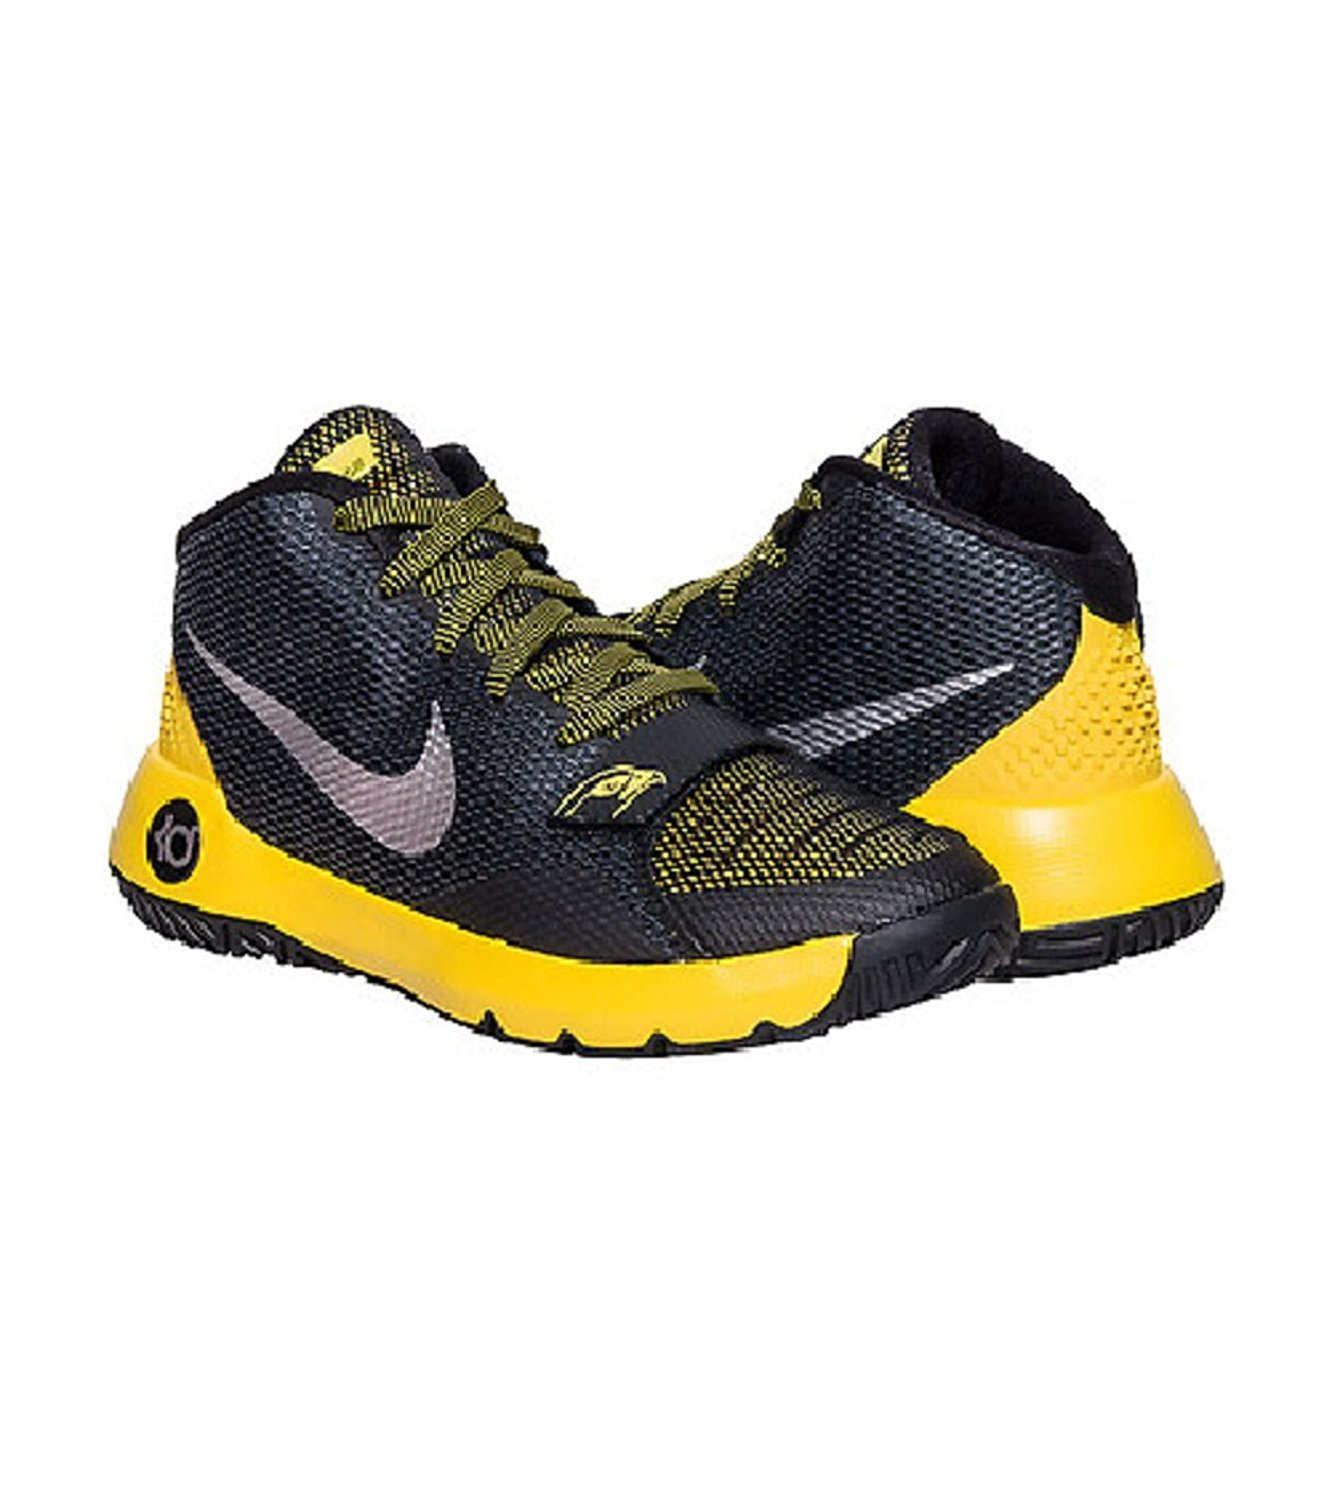 120c947588bc Nike 768870-00 KD Trey 5 III Black Yellow Basketball Shoes Youth Kids Sz 5